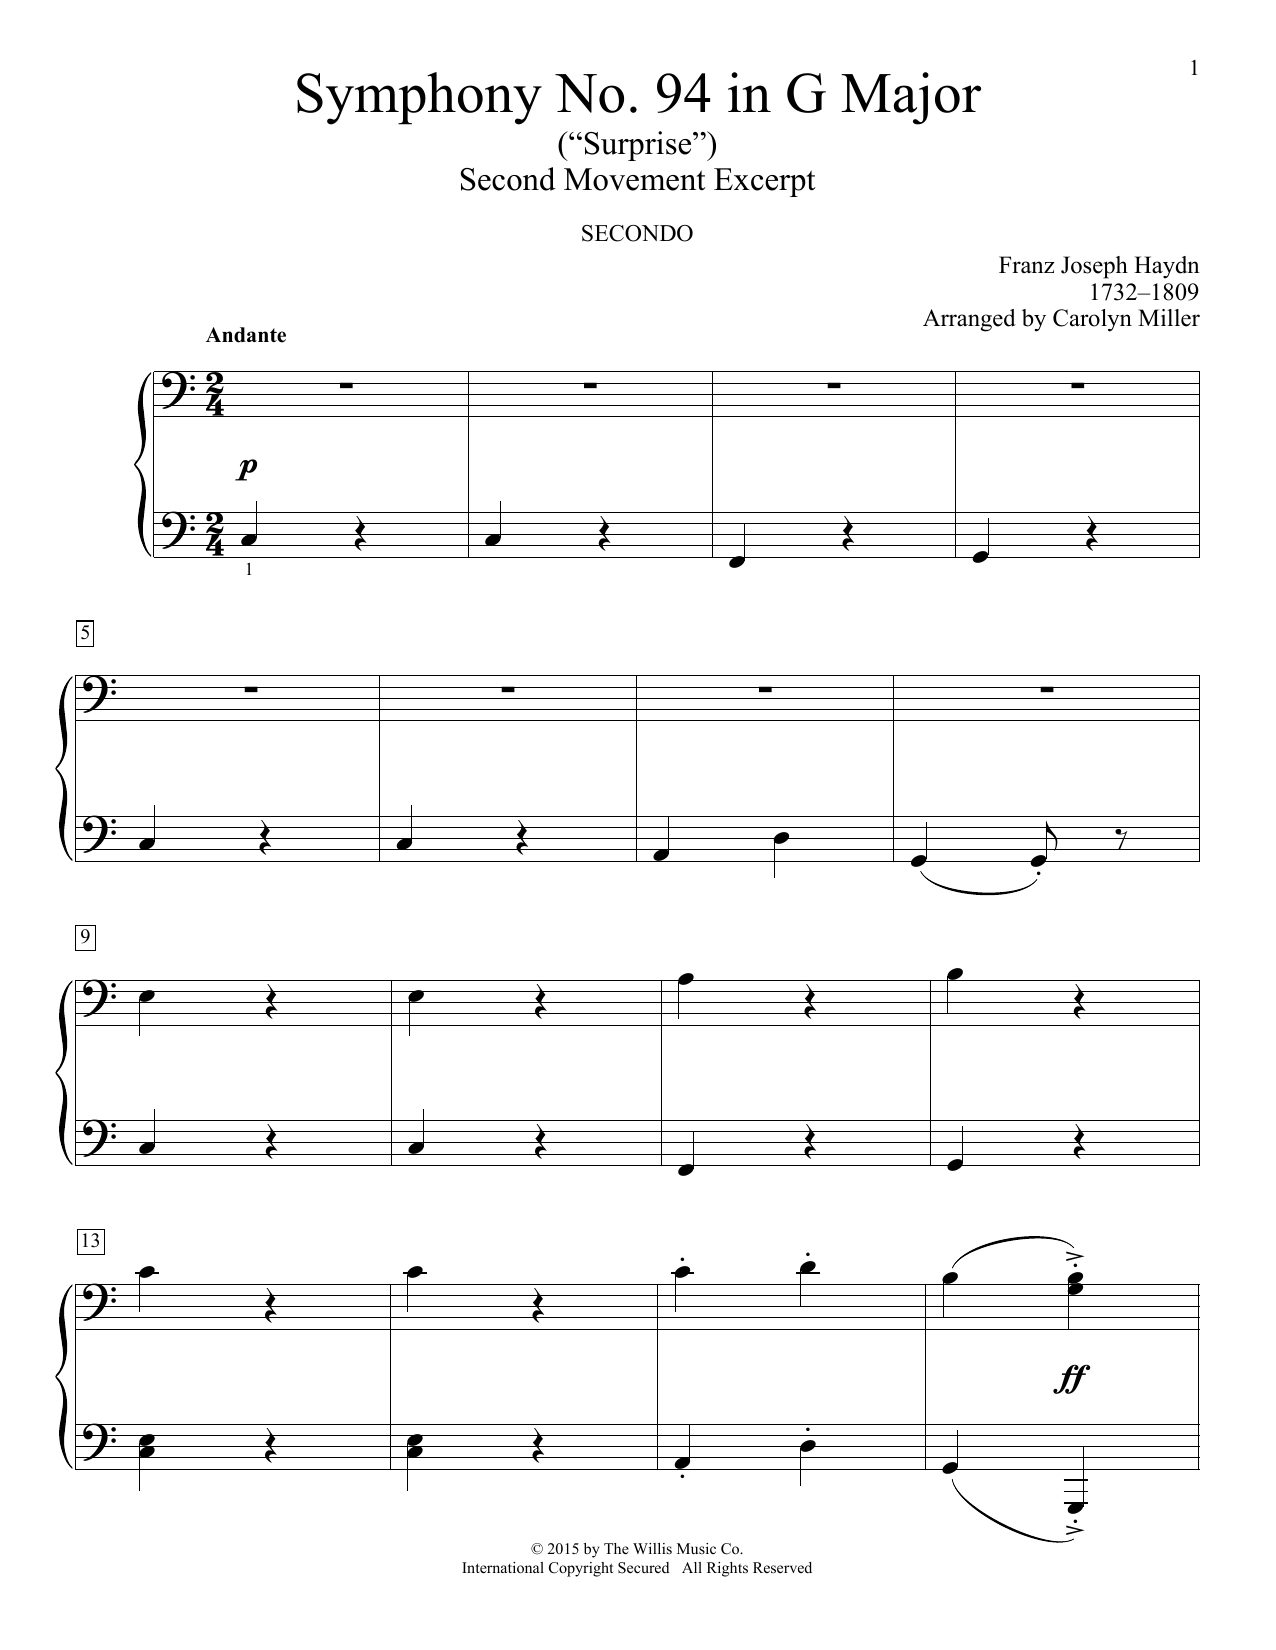 Symphony No. 94 In G Major (Surprise), Second Movement Excerpt Sheet Music